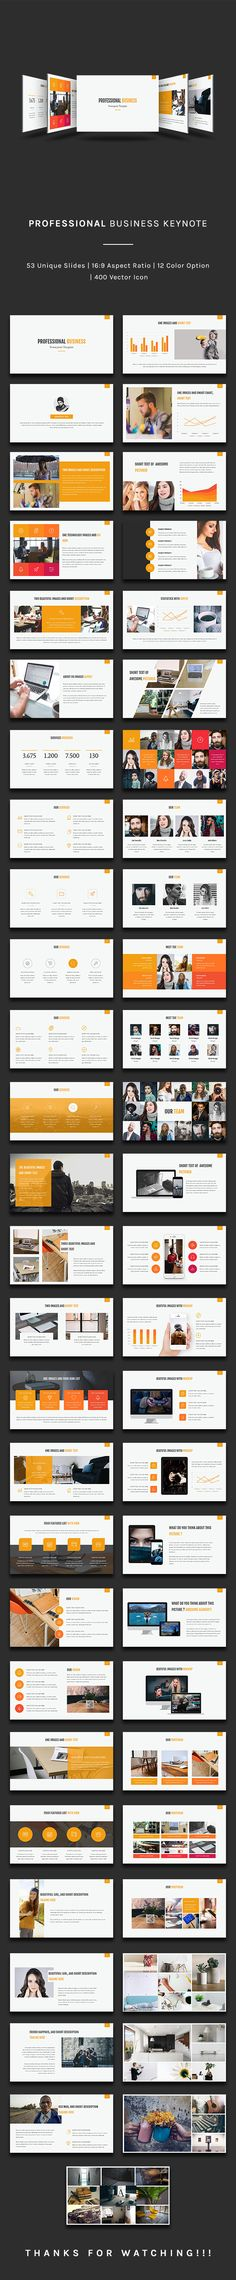 SIMPLE - Powerpoint Business Presentation (PowerPoint Templates - business presentation template